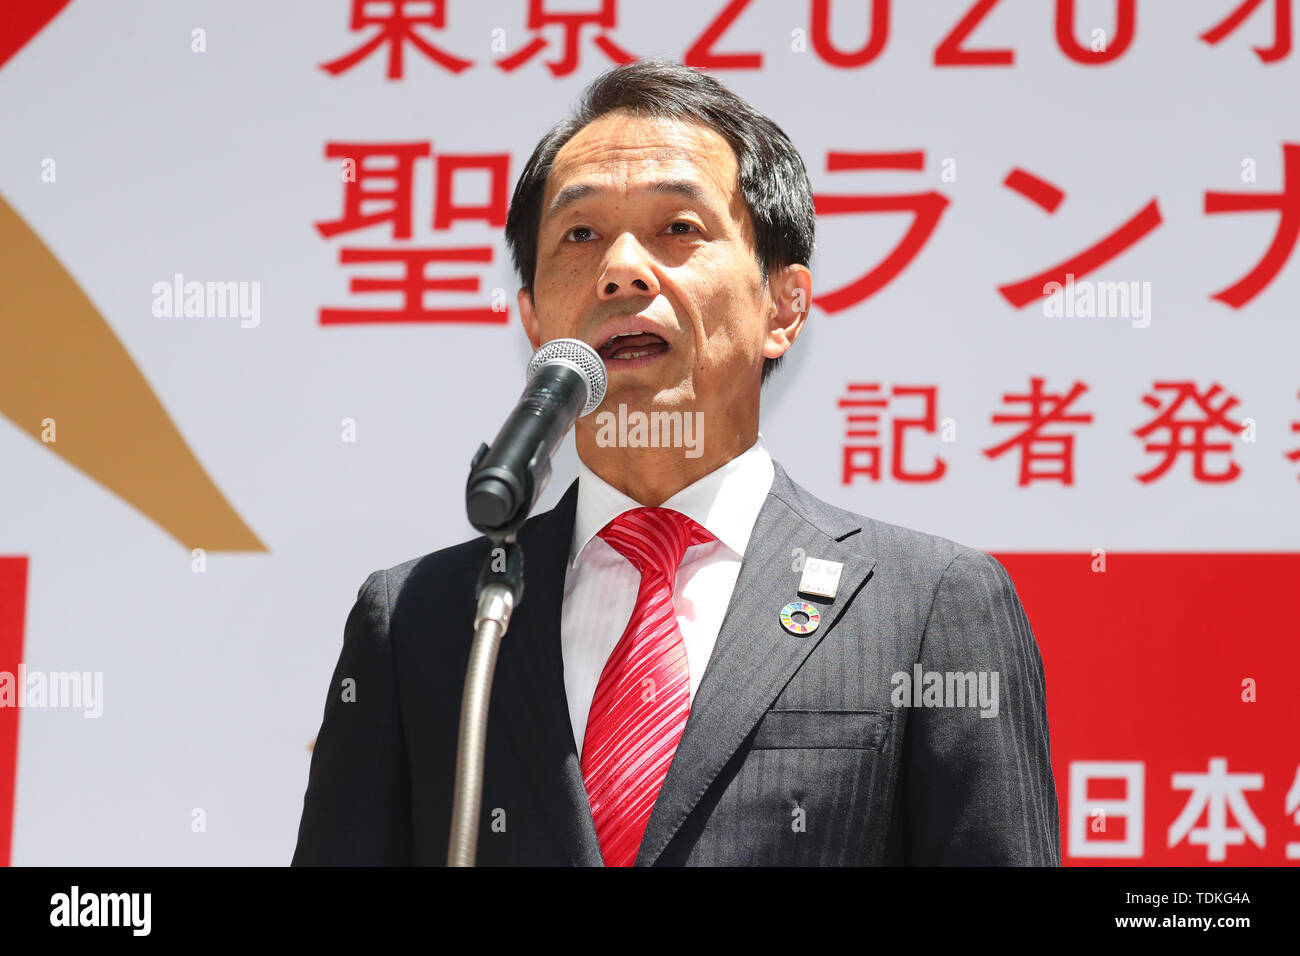 Hiroshi Shimizu, JUNE 17, 2019 : Nippon Life Holds Press Conference on Recruiting Torch Runners for the Tokyo 2020 Olympic Games, in Tokyo, Japan. Credit: YUTAKA/AFLO SPORT/Alamy Live News - Stock Image